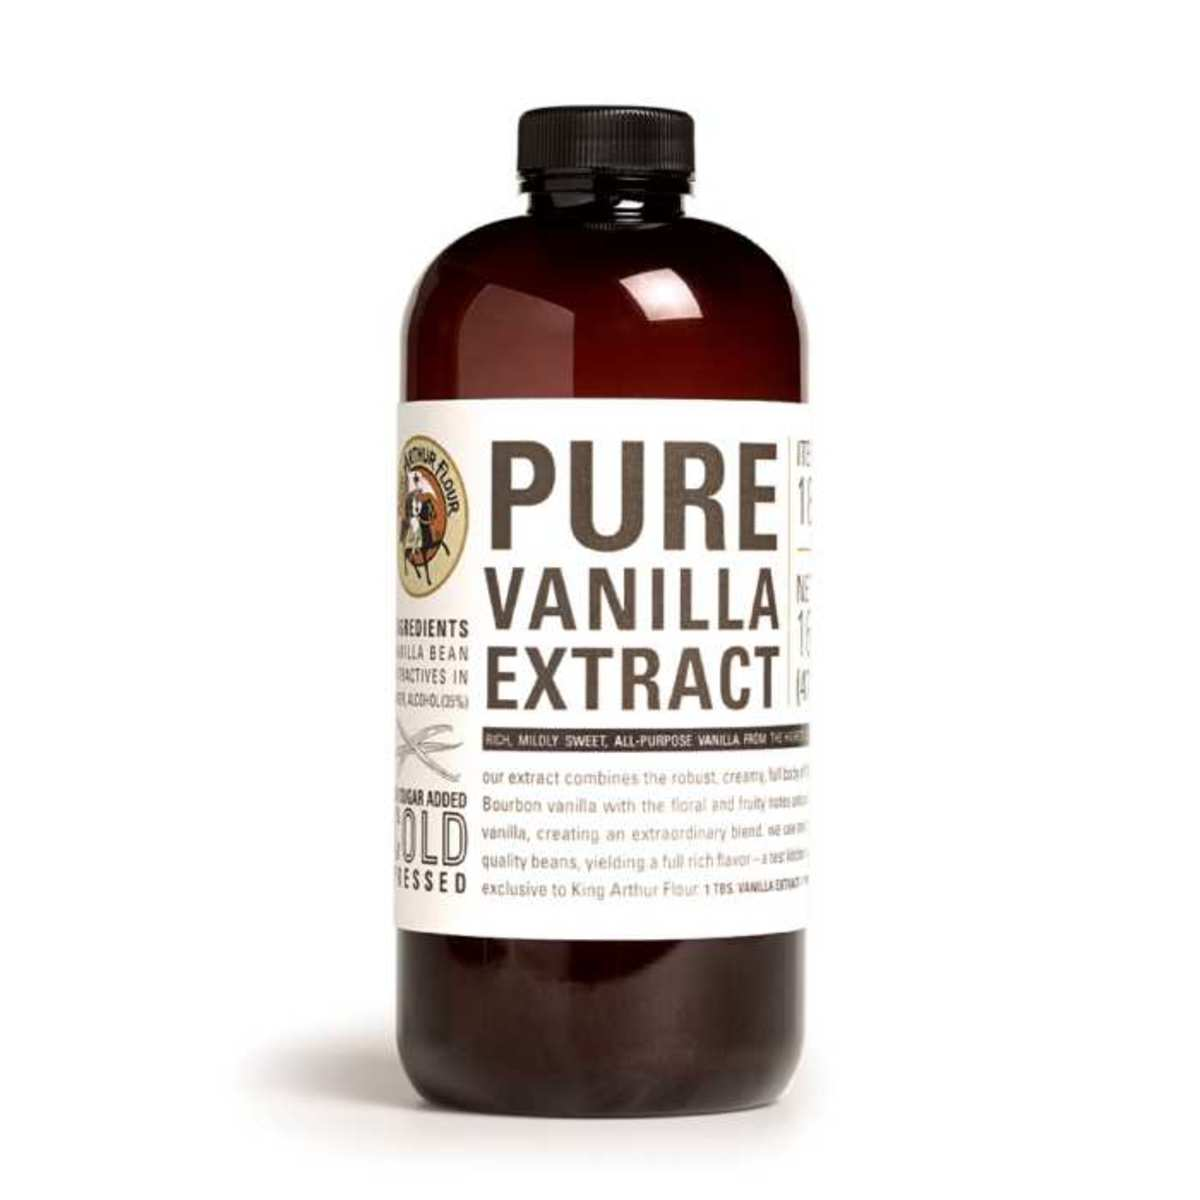 Why is vanilla extract always one of the last ingredients to be added?